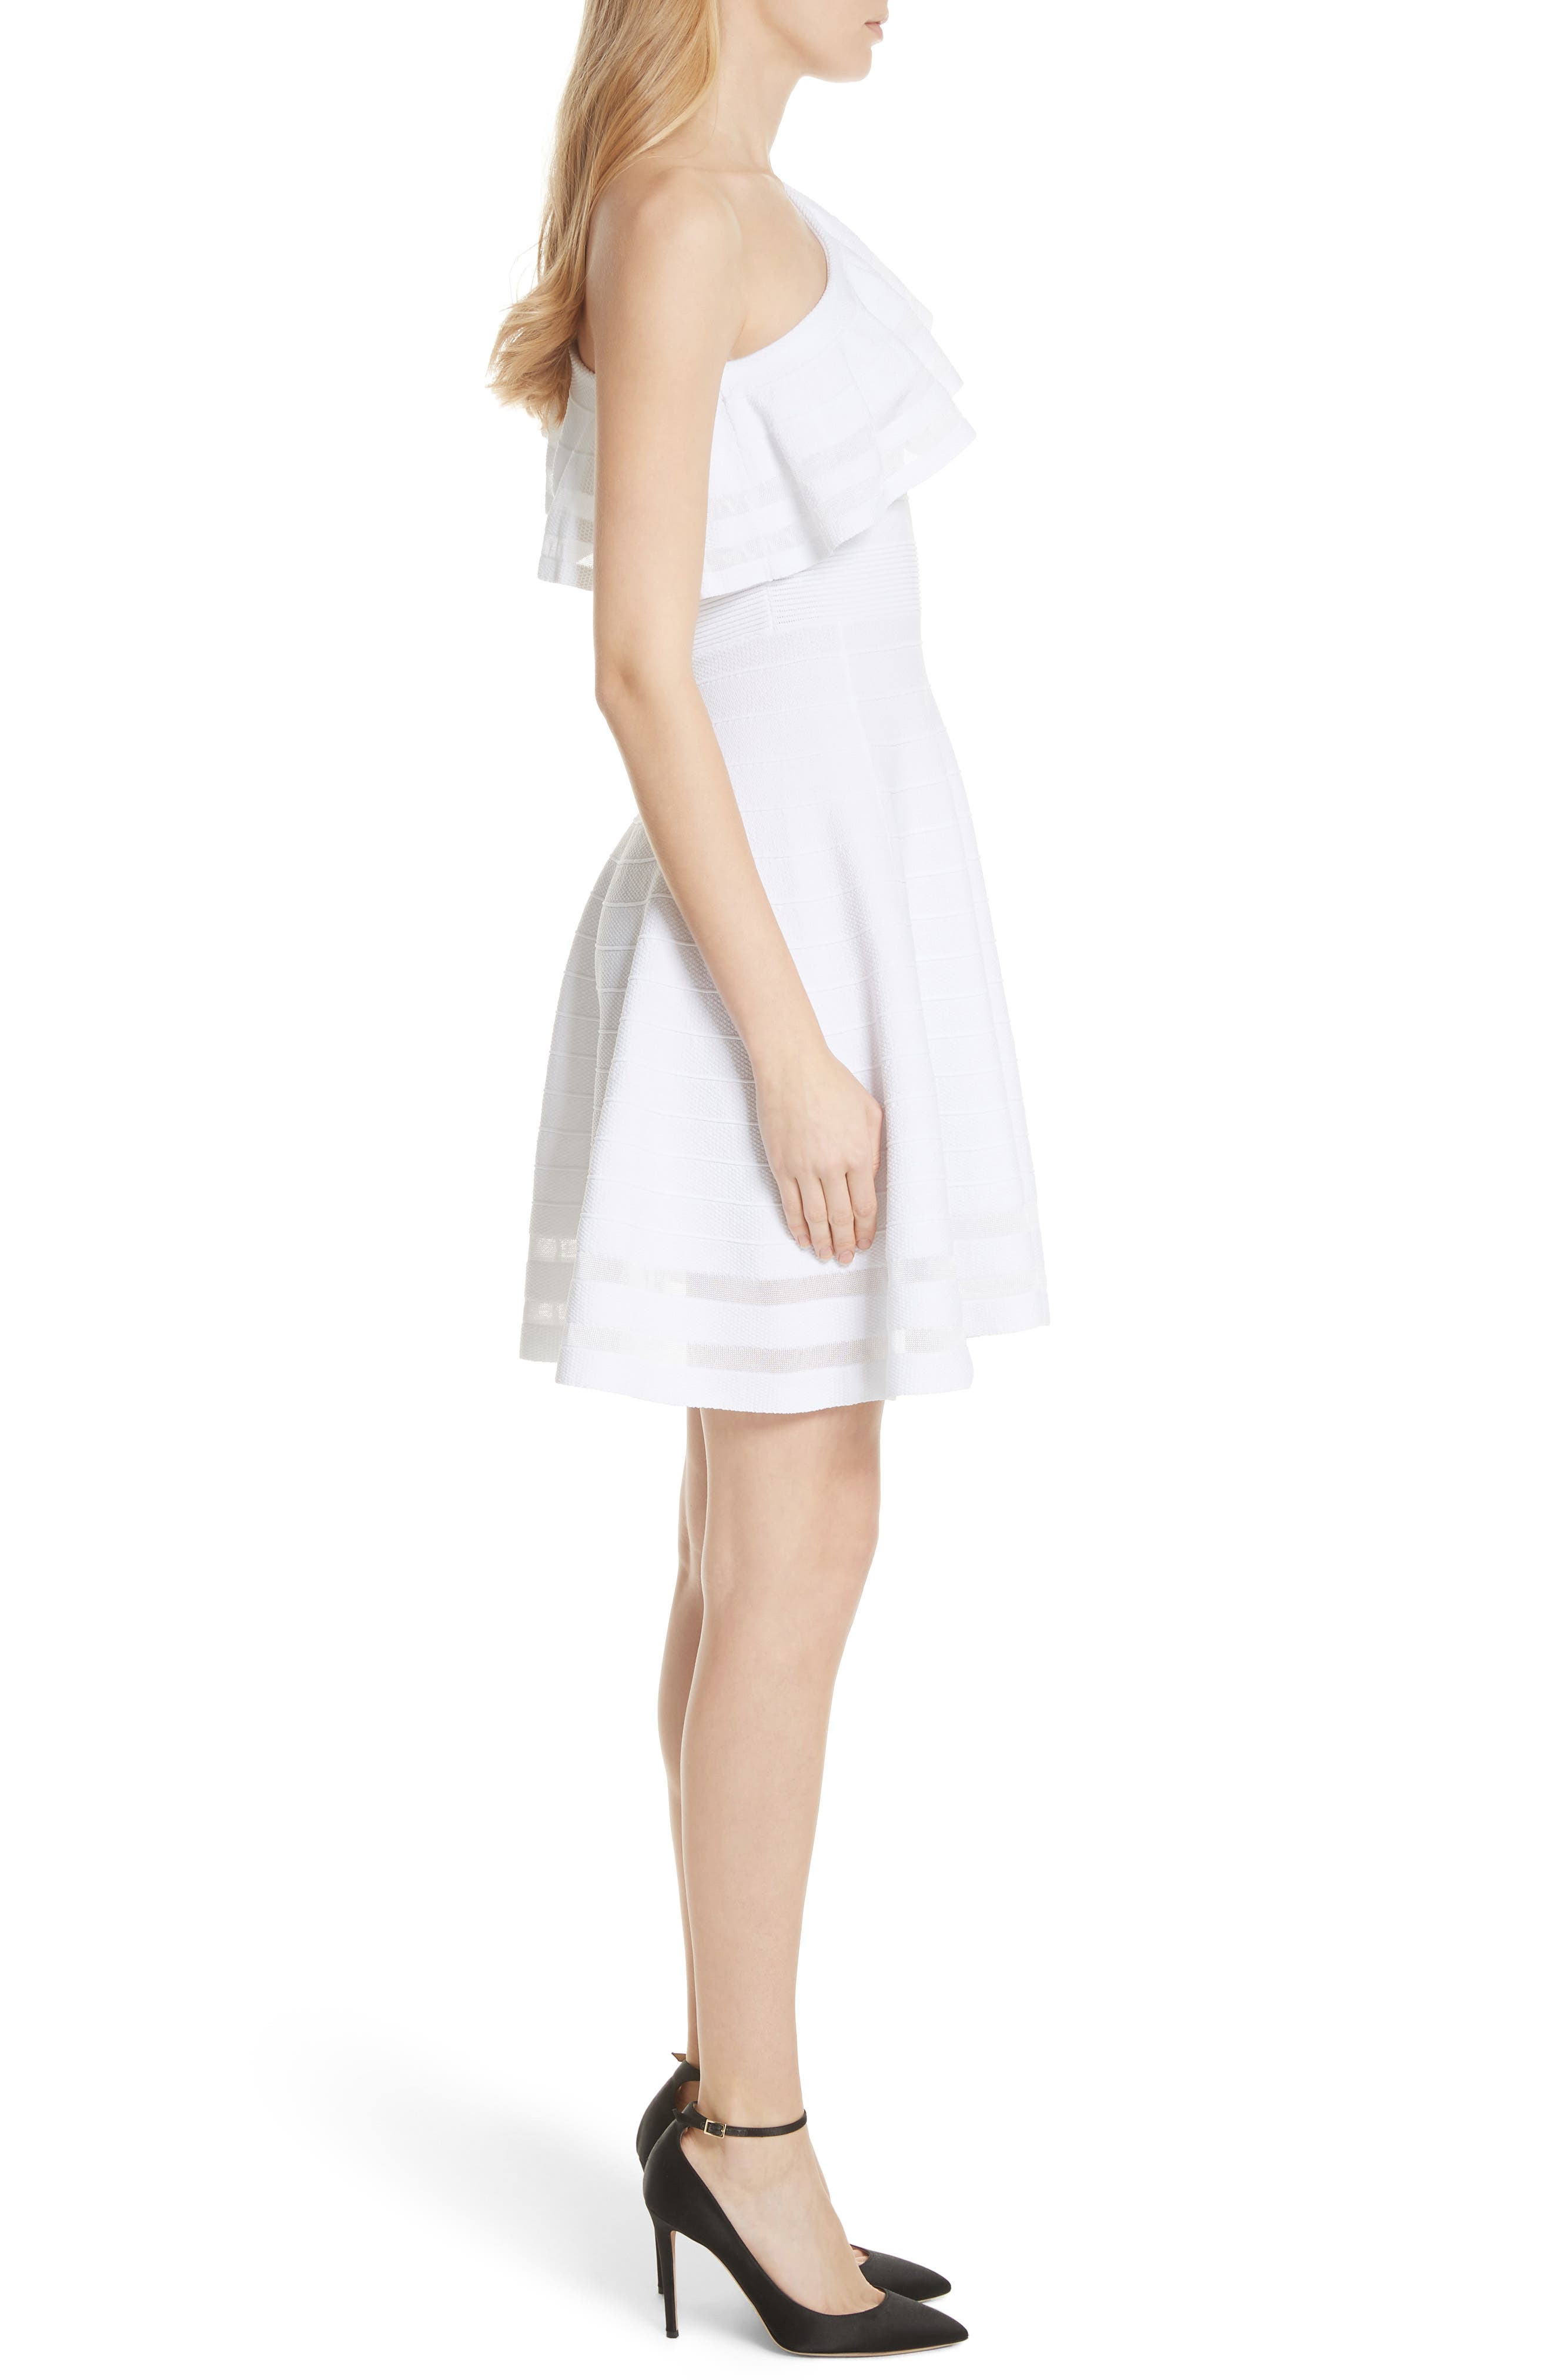 Streena Knit Skater Dress,                             Alternate thumbnail 3, color,                             White